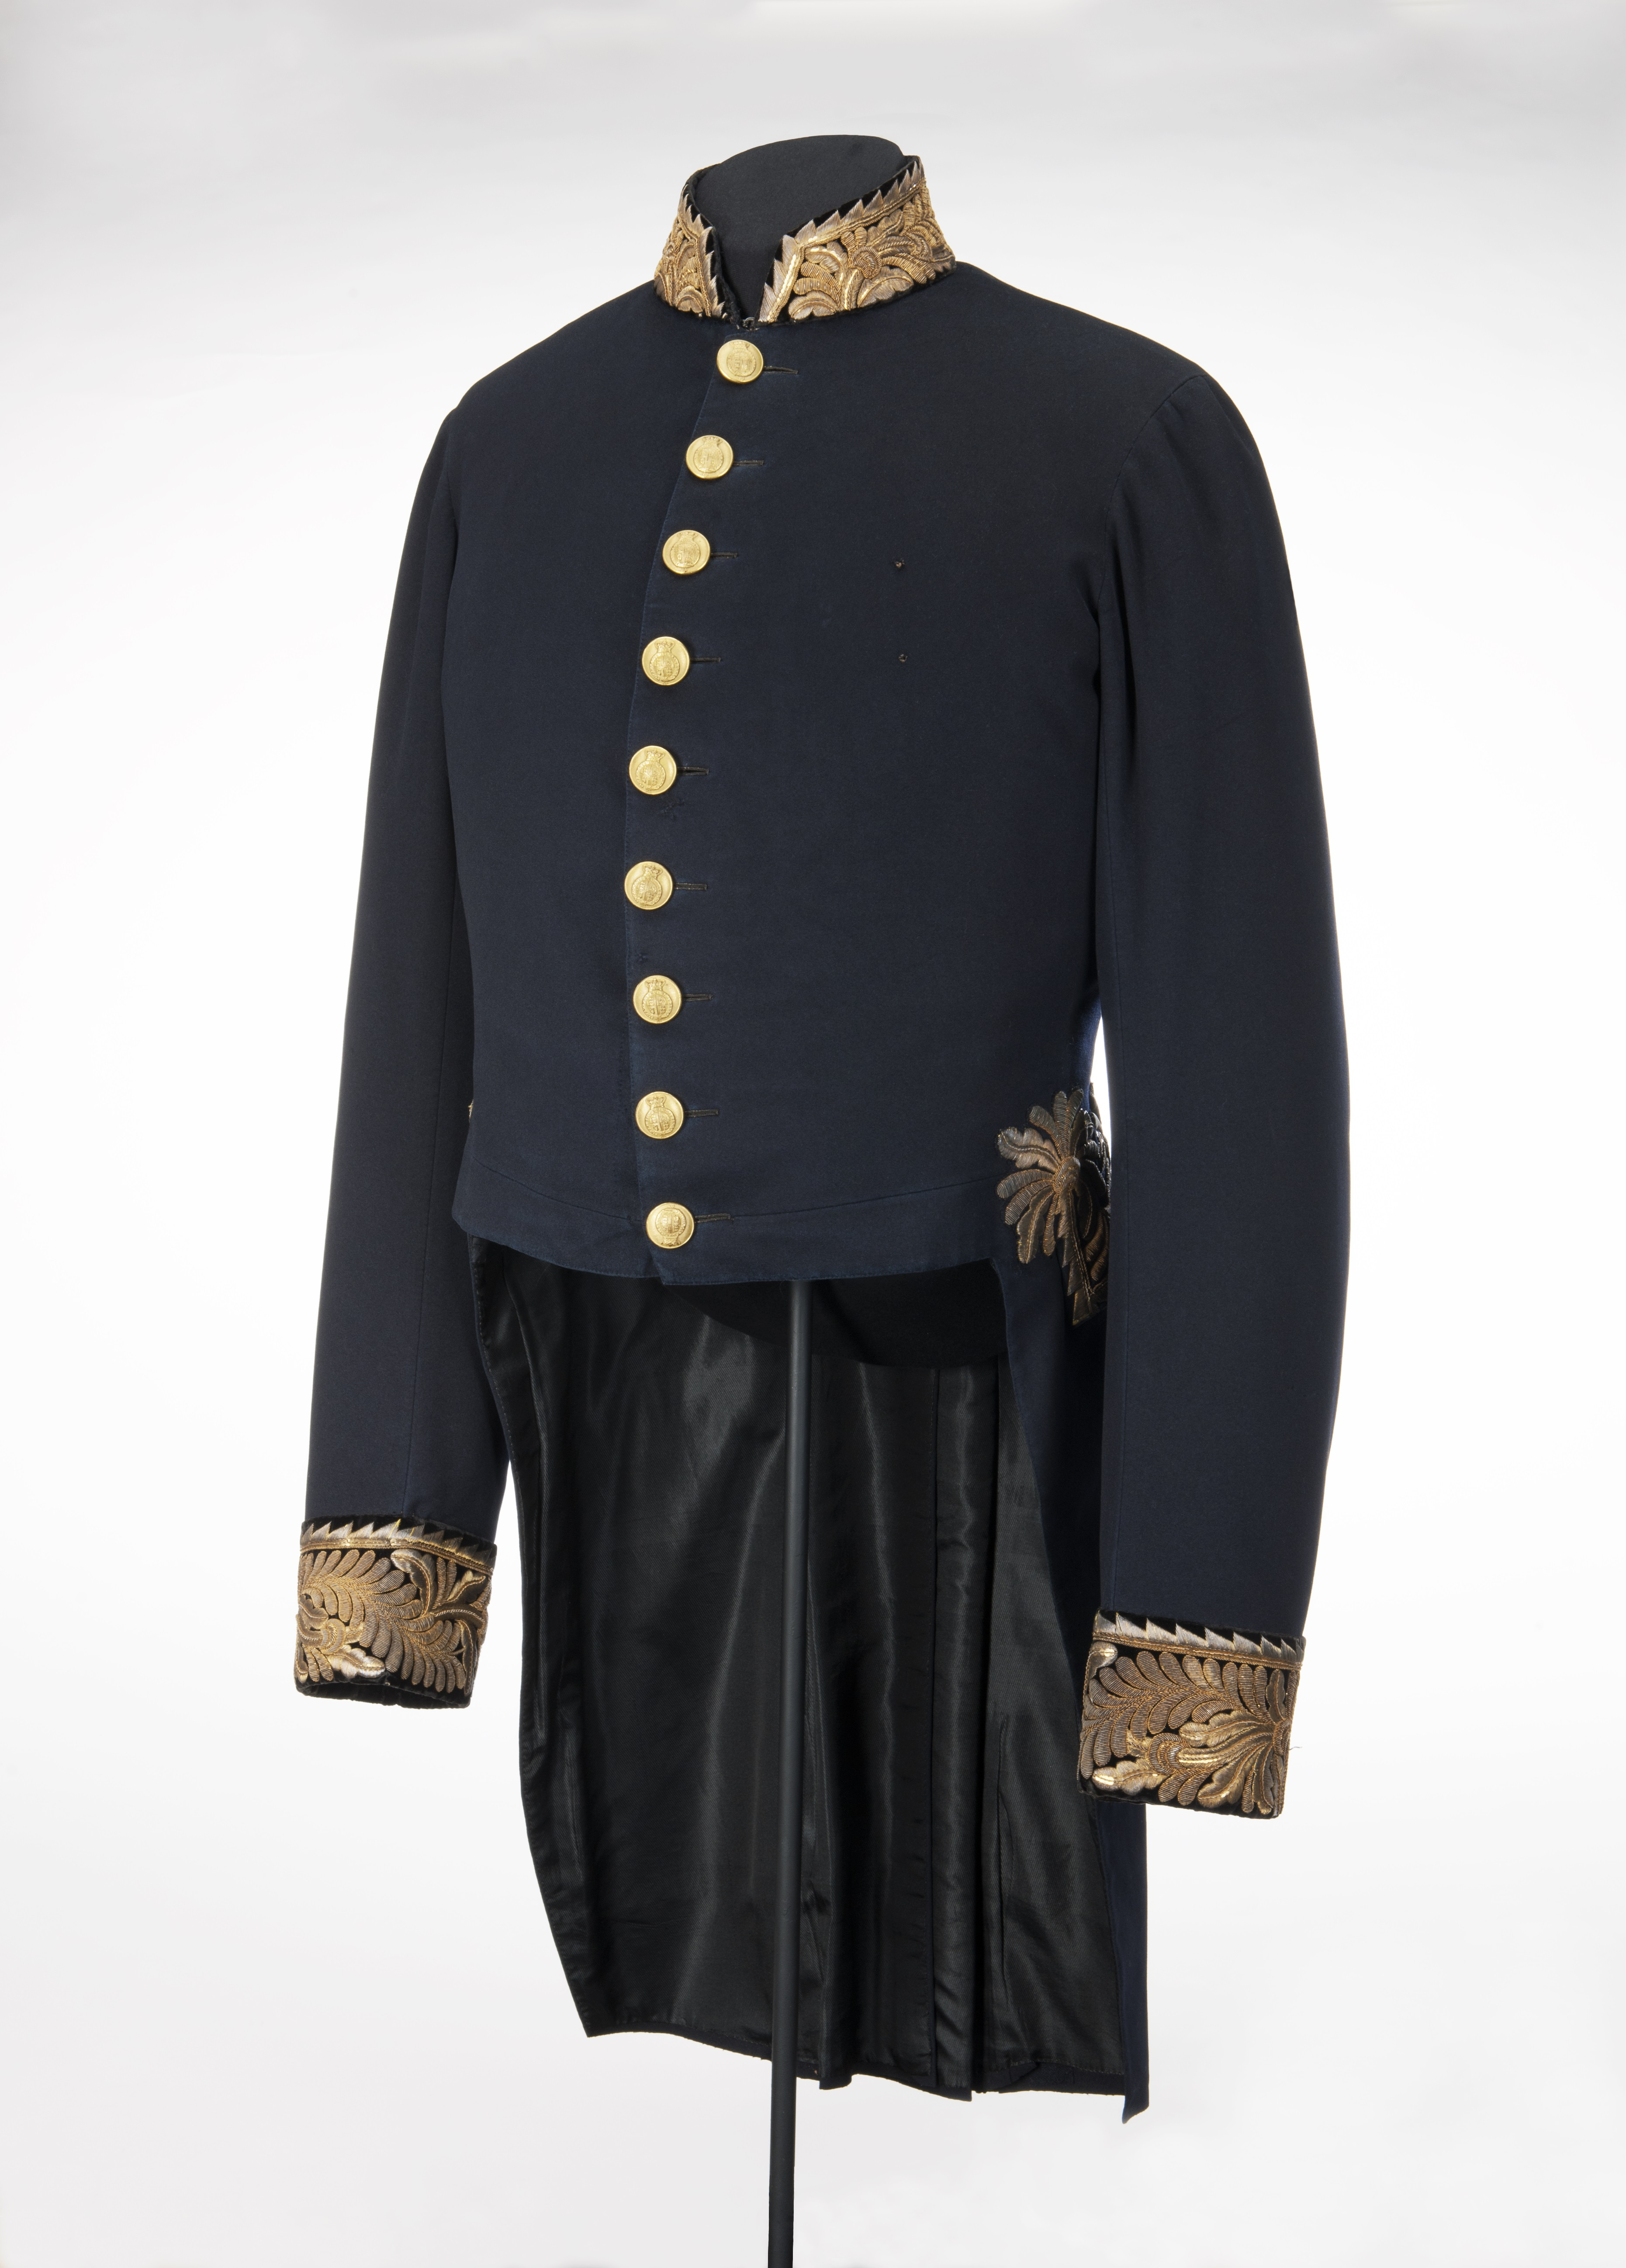 blue civil uniform jacket with gold cuffs and buttons.